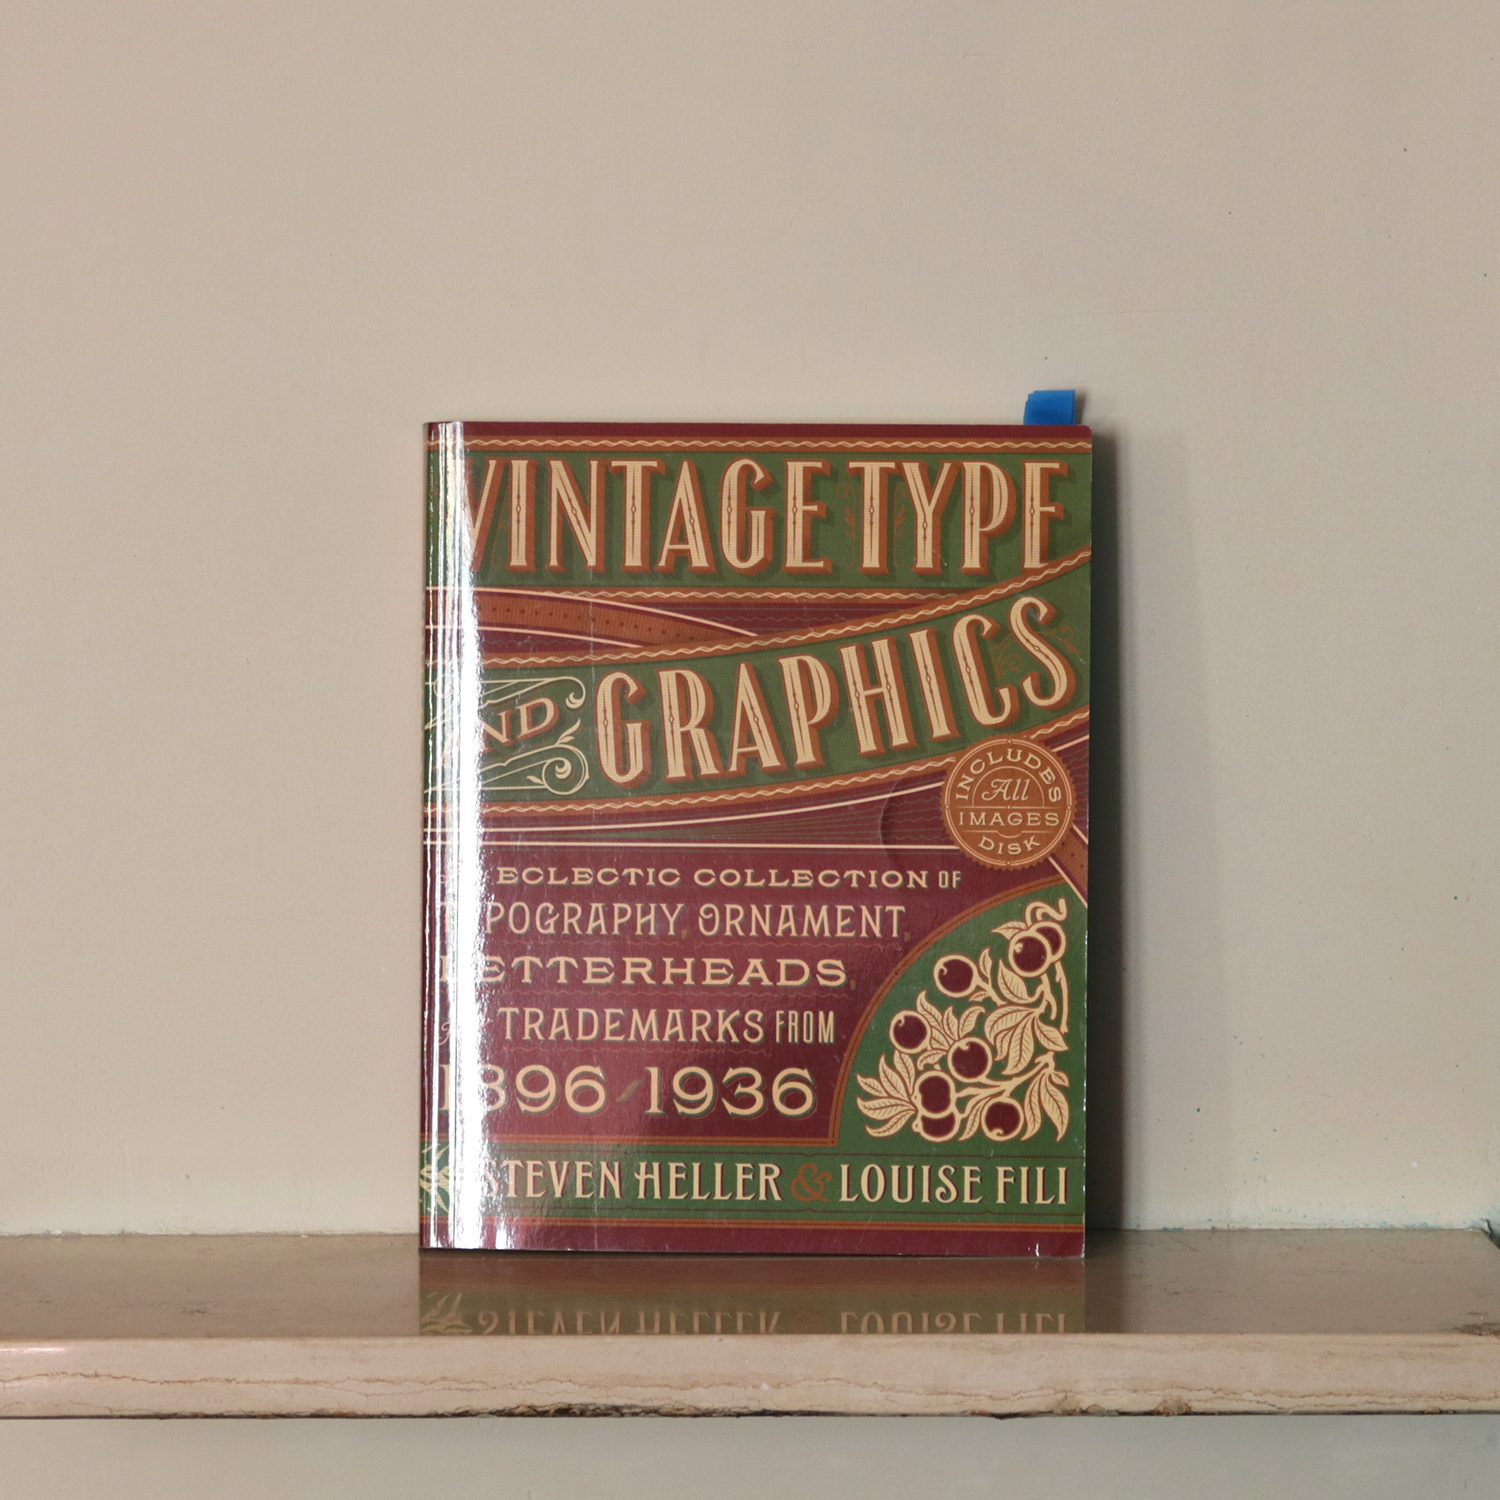 Vintage type and graphics 1896-1936